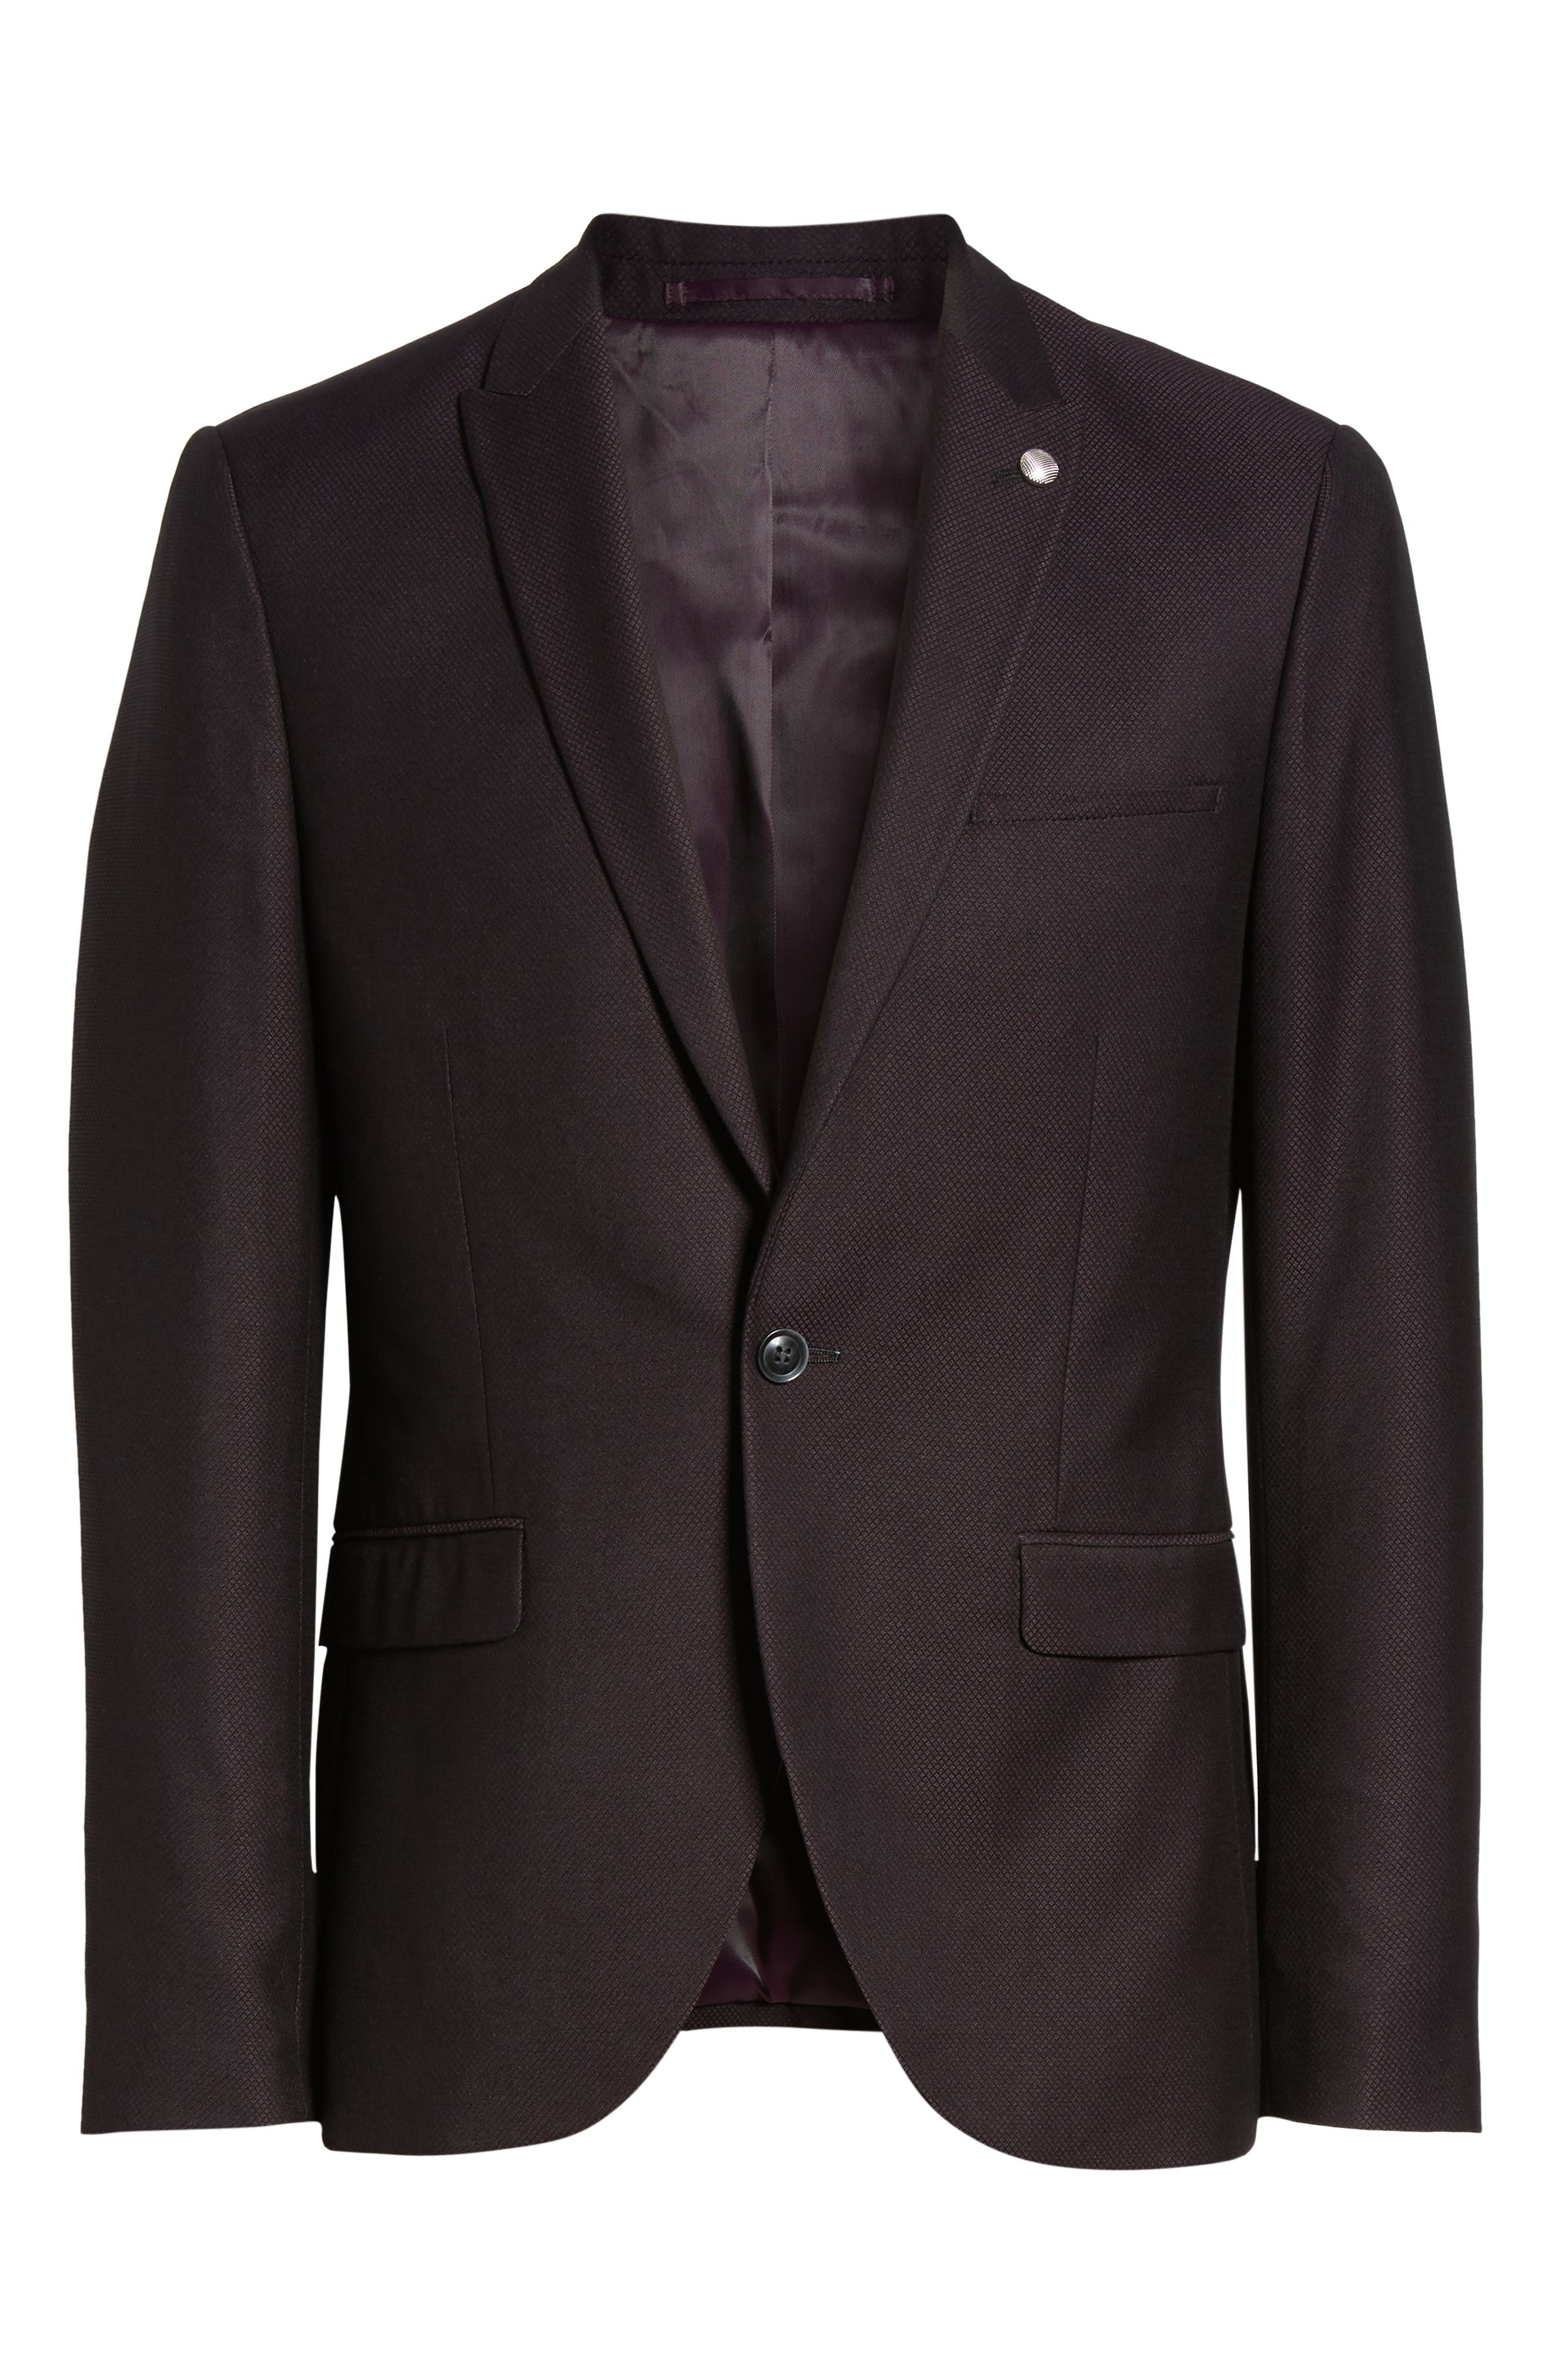 TOPMAN,                             Bicester Skinny Fit Suit Jacket,                             Alternate thumbnail 5, color,                             930